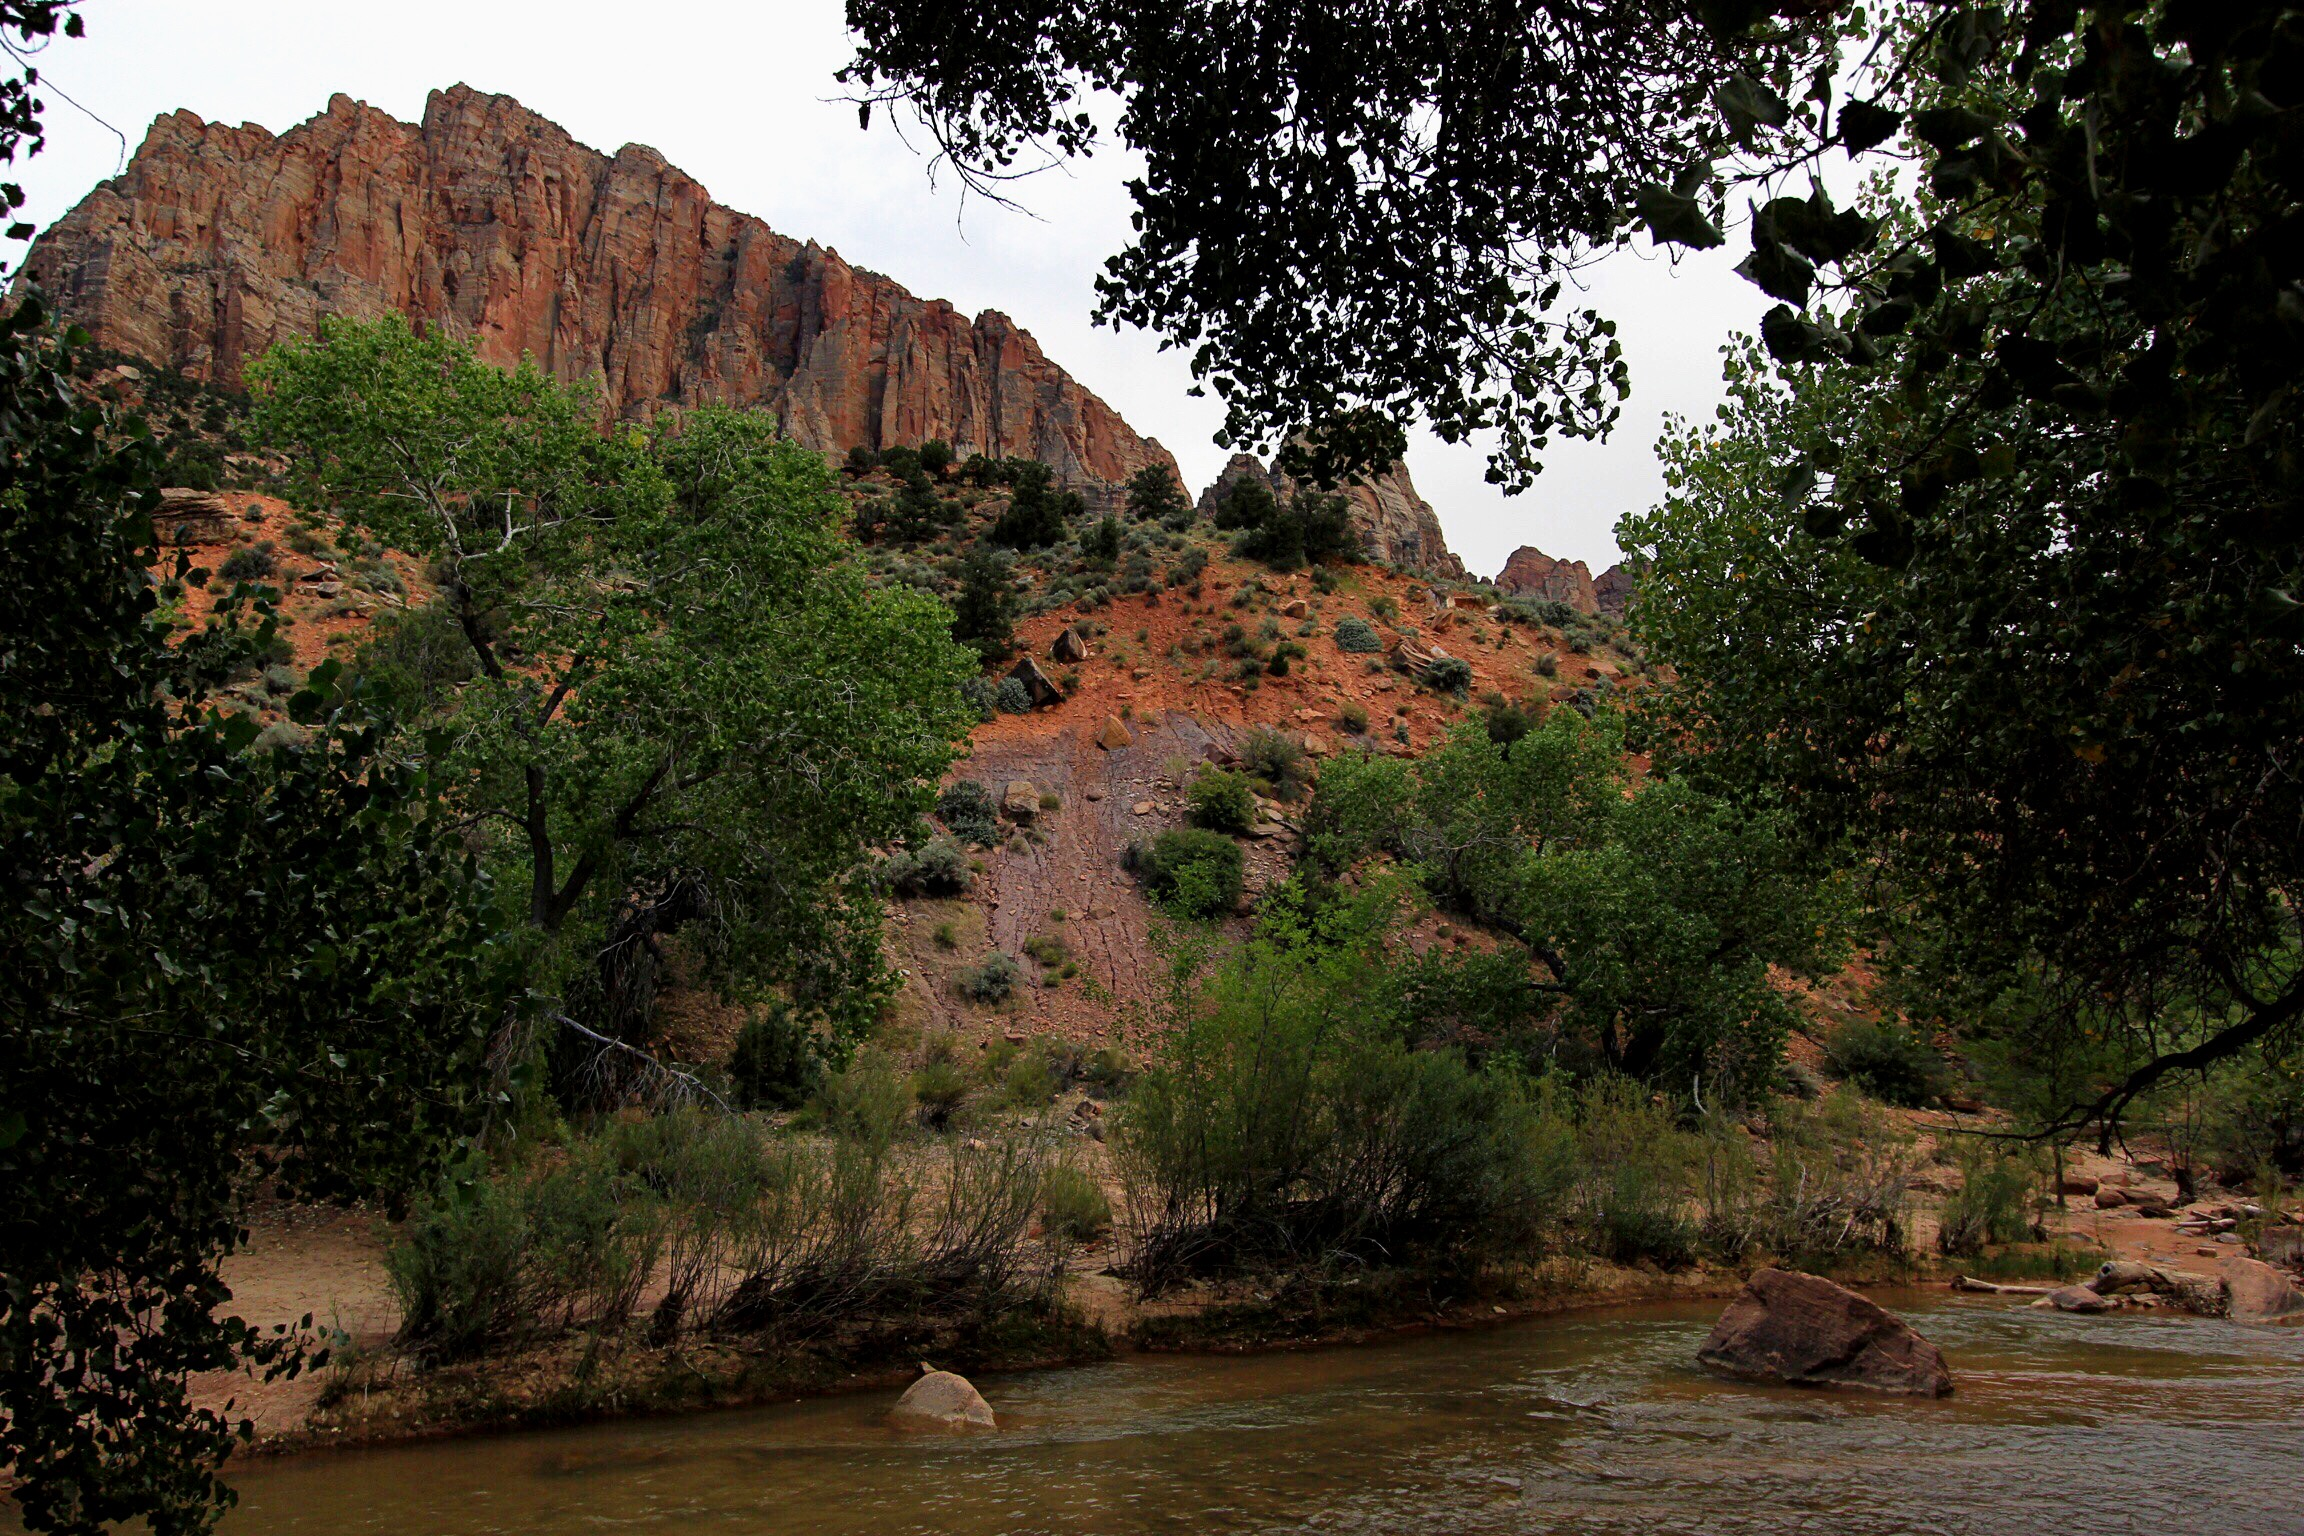 View from our campsite outside the park at Zion Canyon Campground